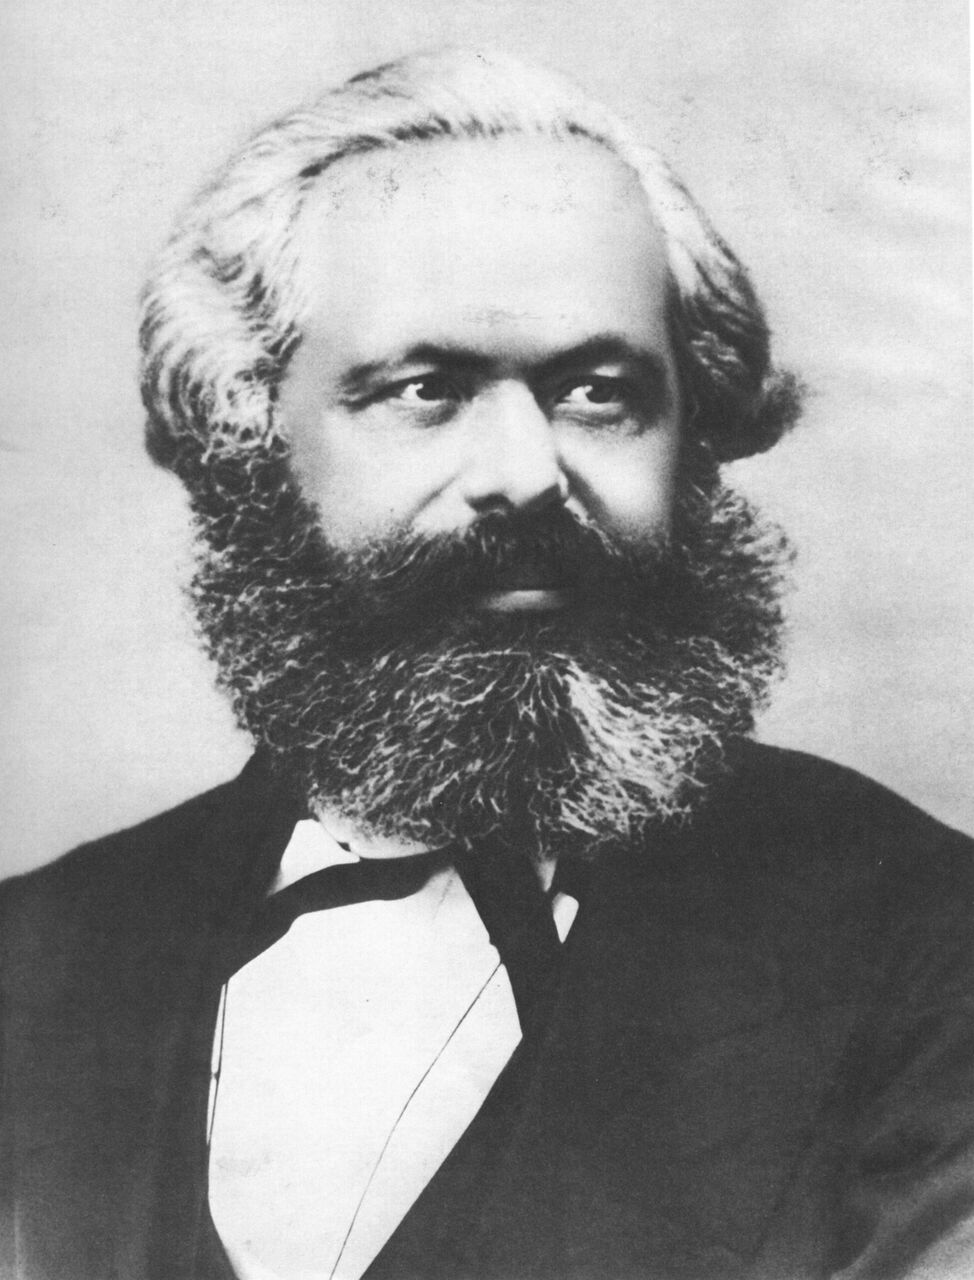 the life and achievements of karl maryx Karl heinrich marx was one of nine children born to heinrich and henrietta marx in trier, prussia his father was a successful lawyer who revered kant and voltaire, and was a passionate activist.